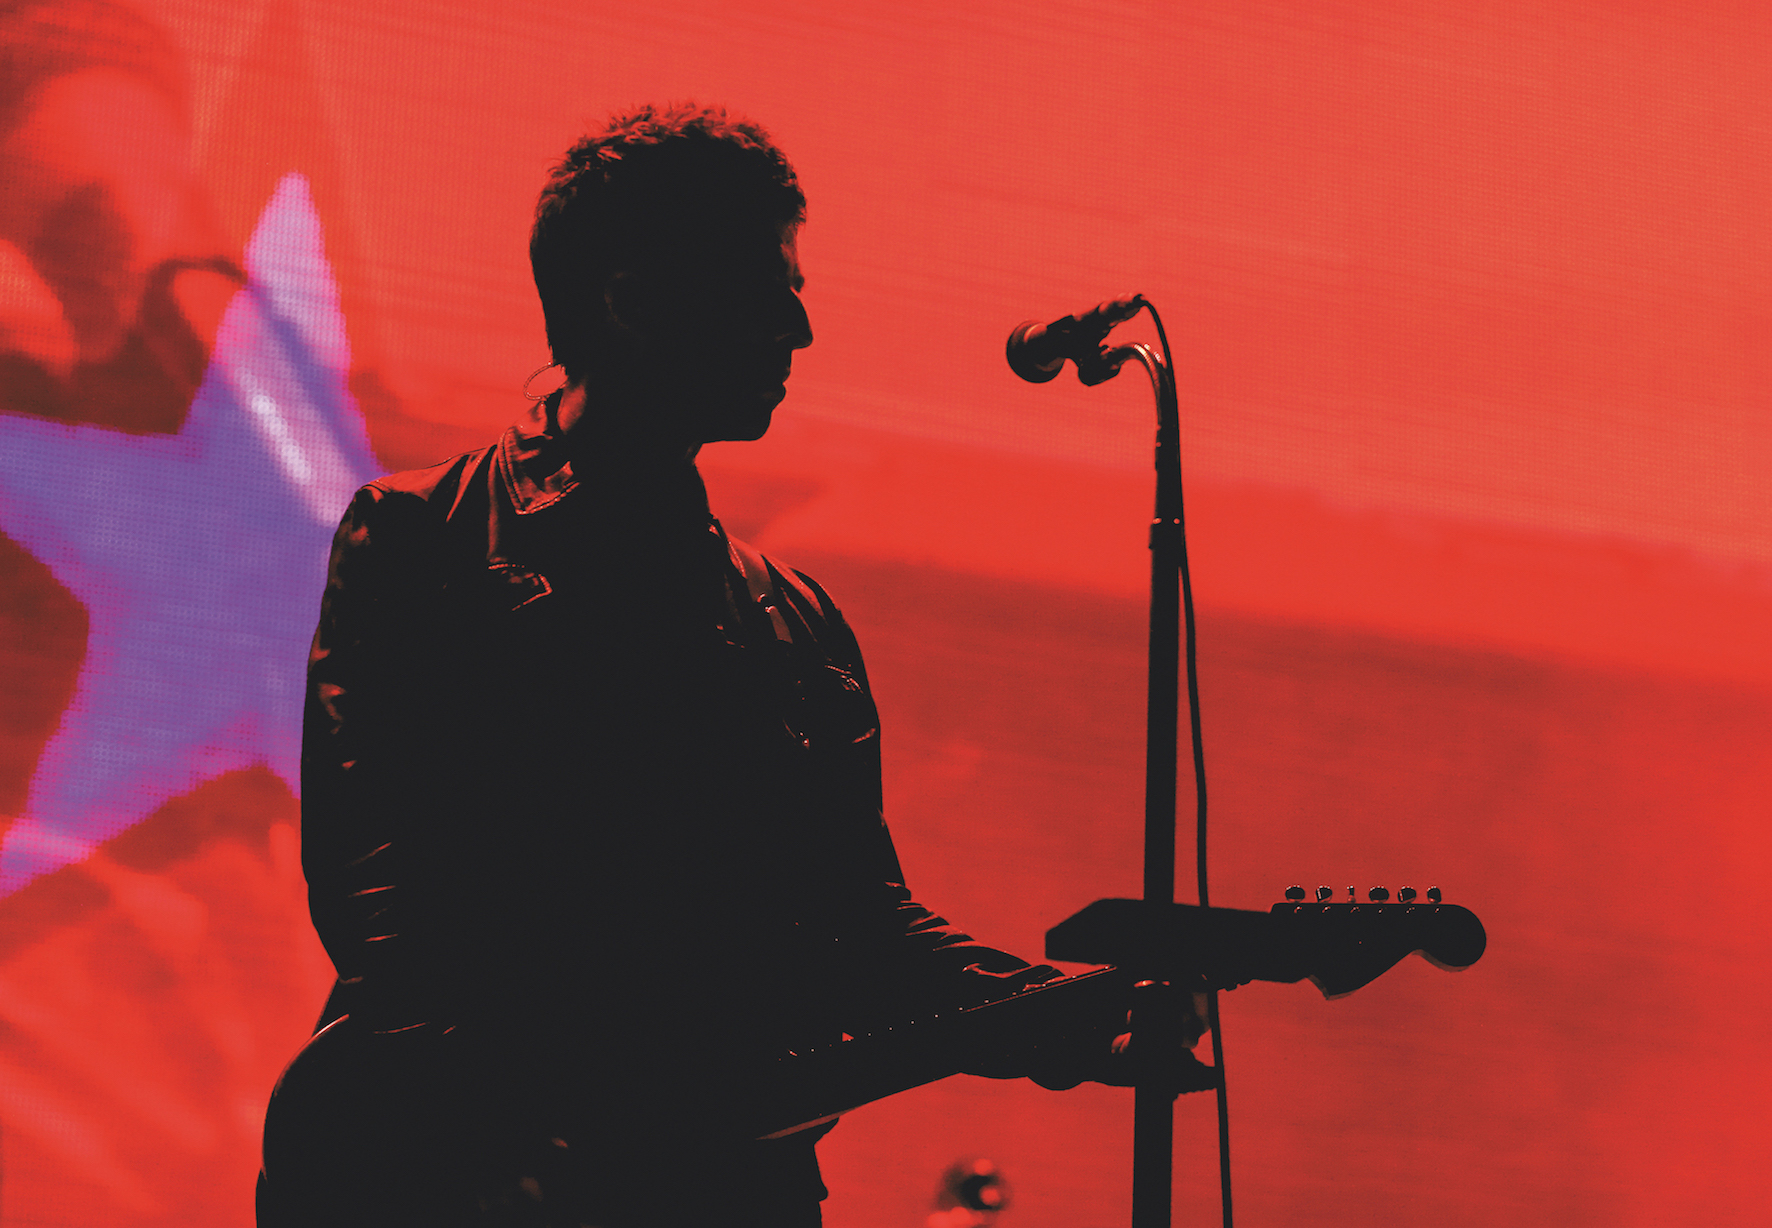 Noel Gallagher and his High Flying Birds are set to rock the stage in Inverness this summer.